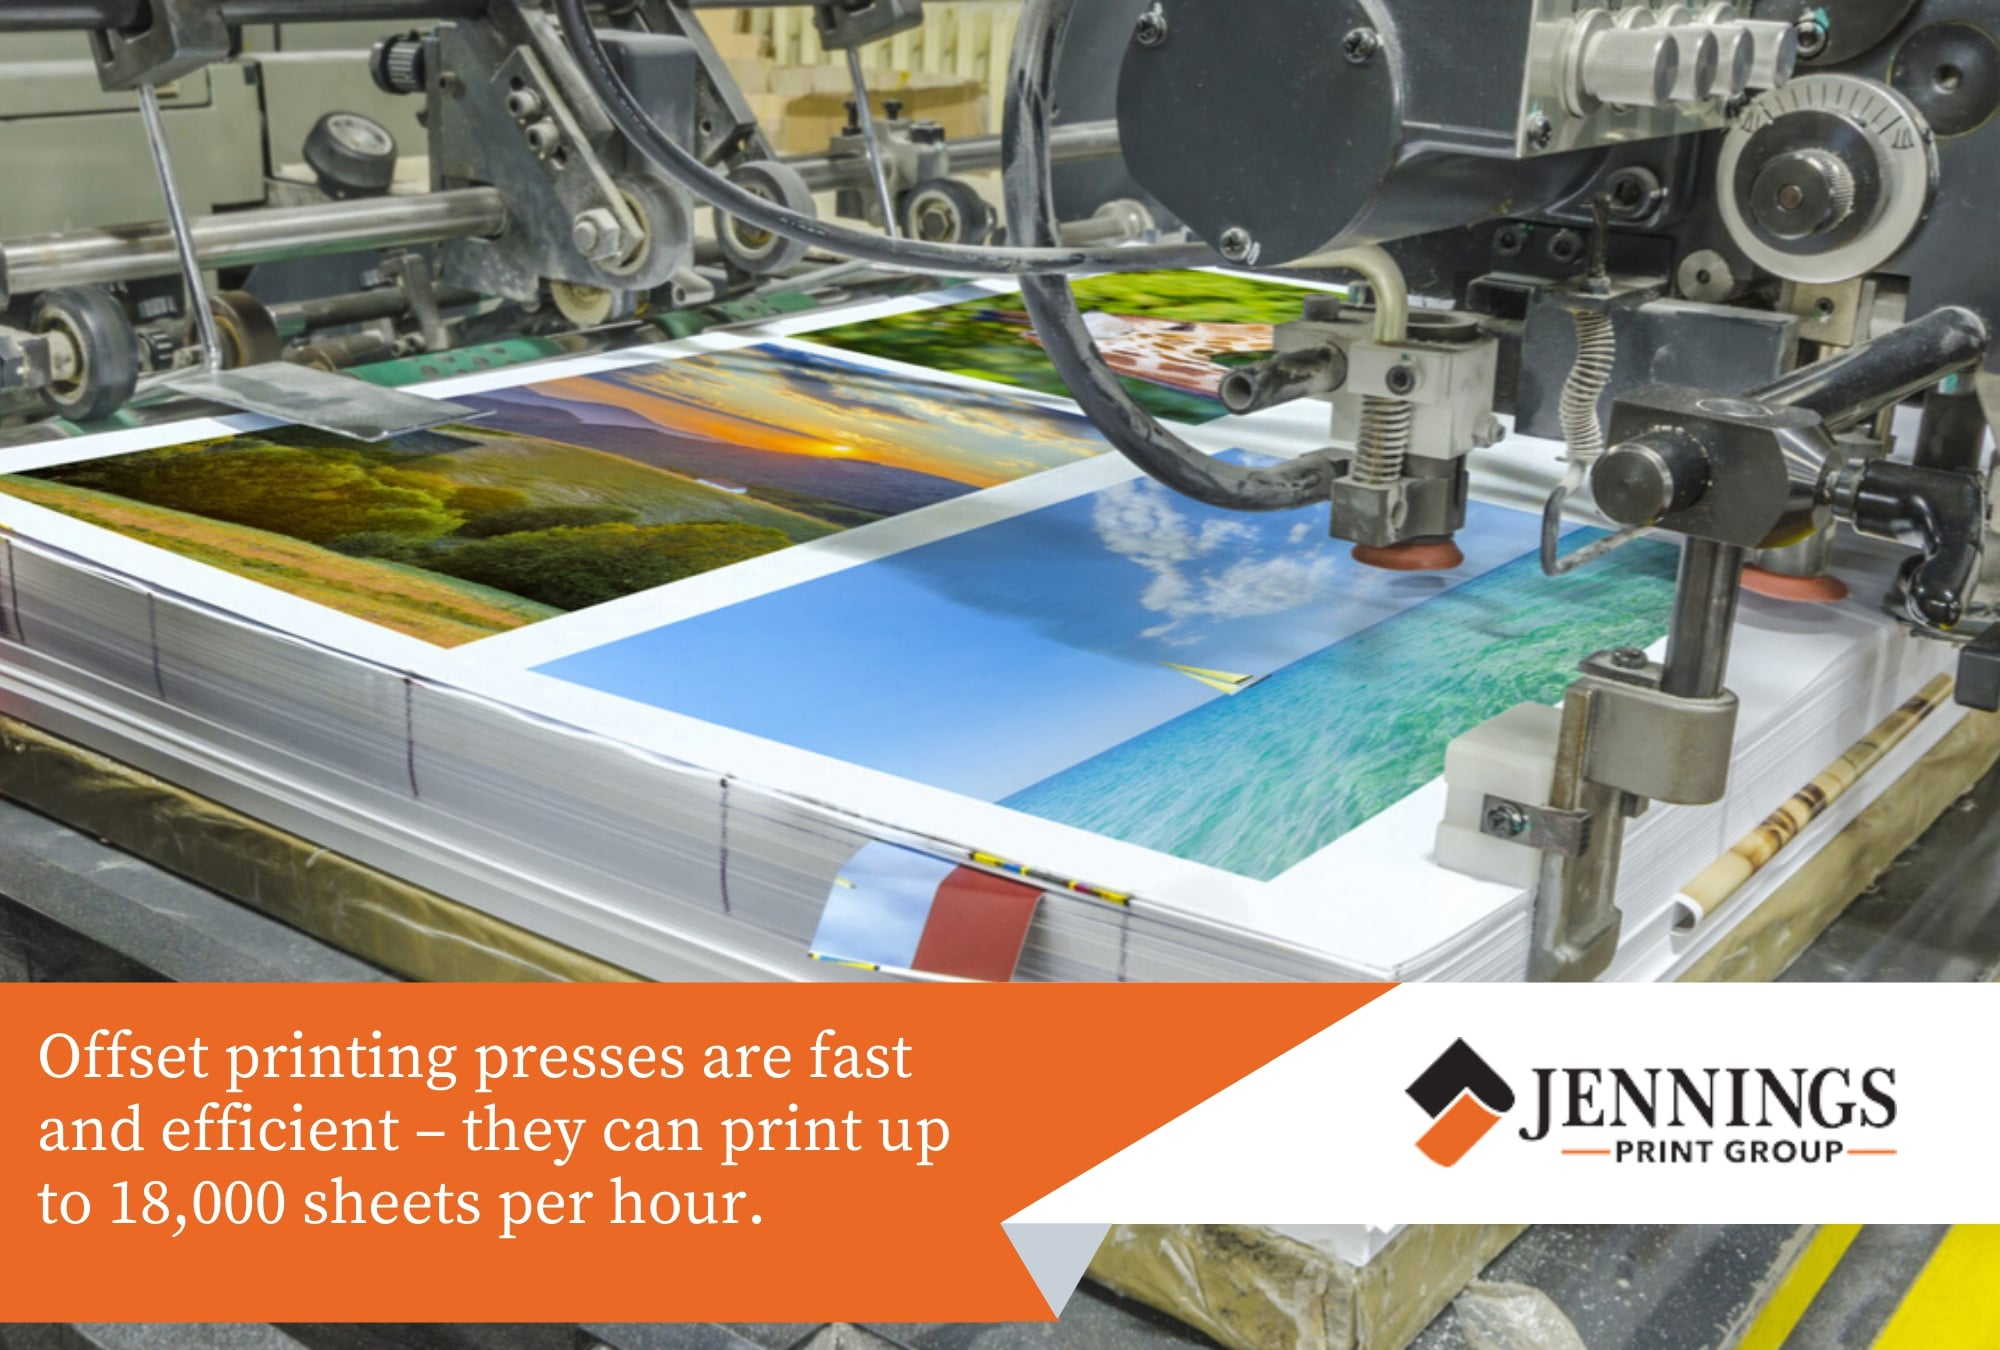 offset printing presses are fast and efficient